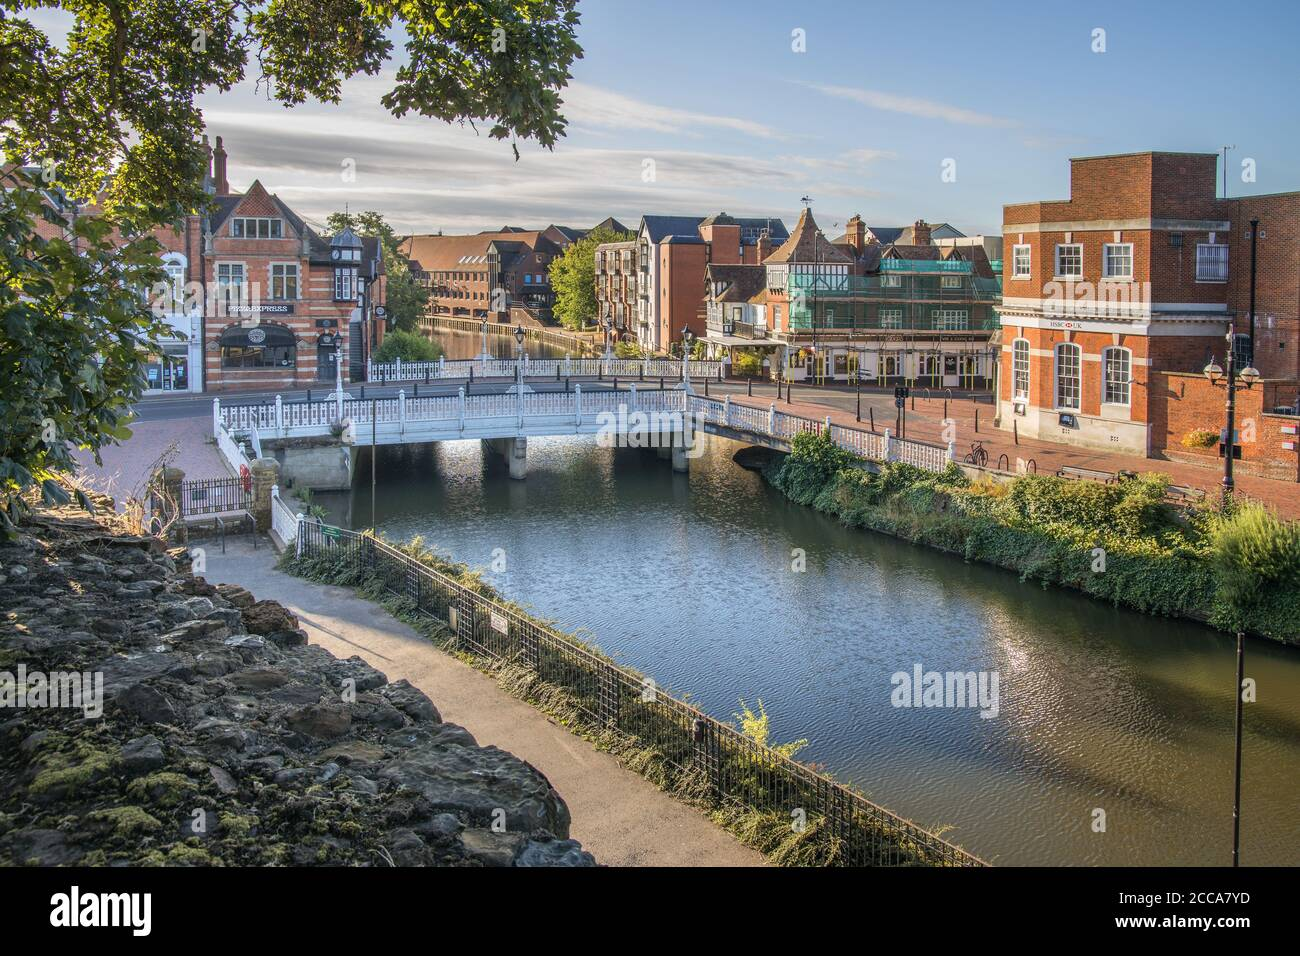 ornate bridge in the town of tonbridge on the river medway in kent Stock Photo